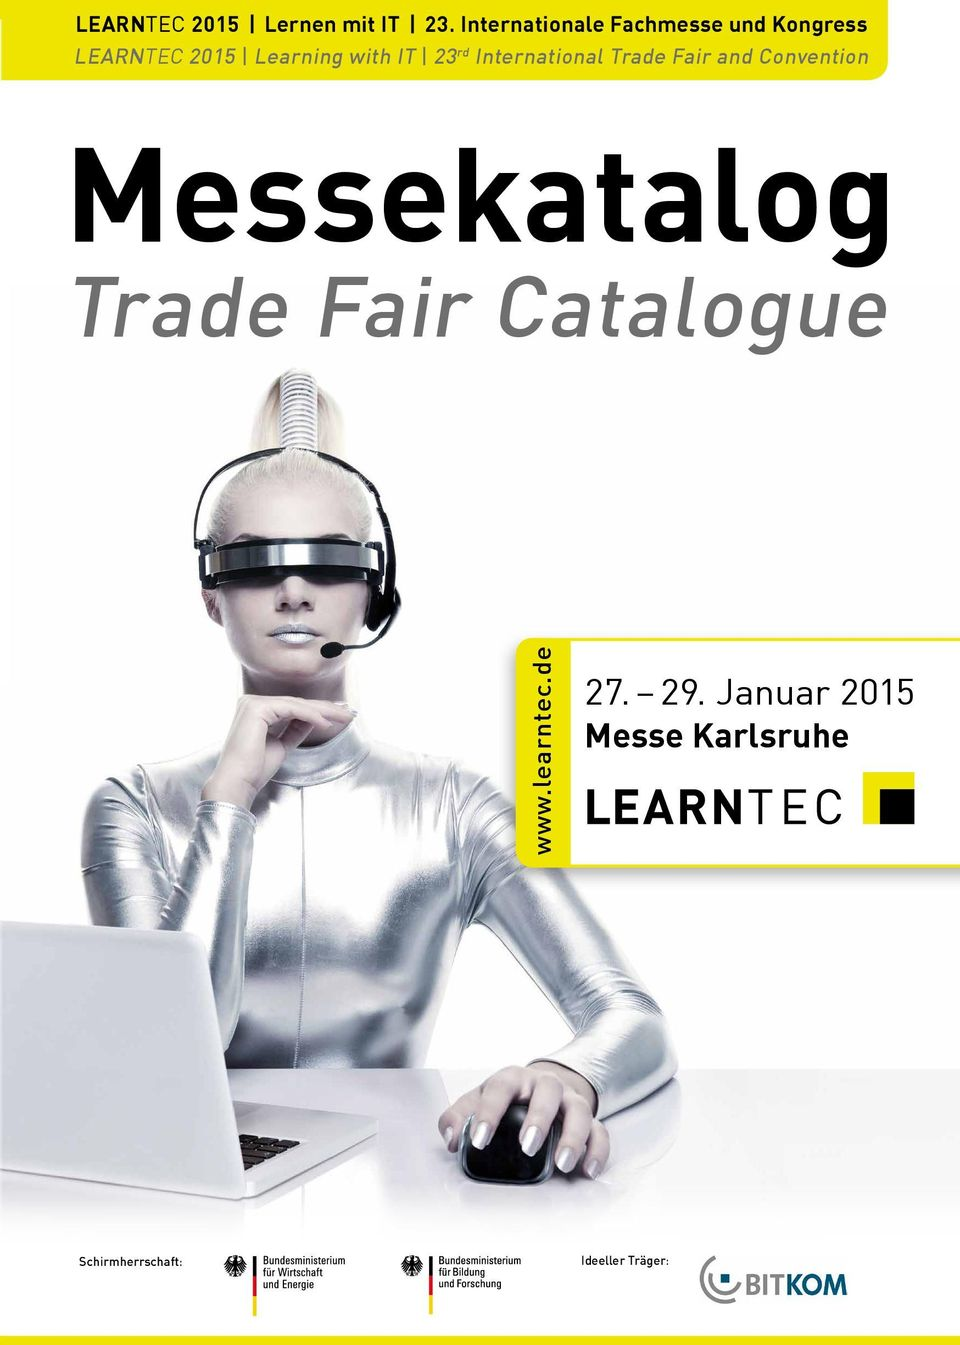 IT 23 rd International Trade Fair and Convention Messekatalog